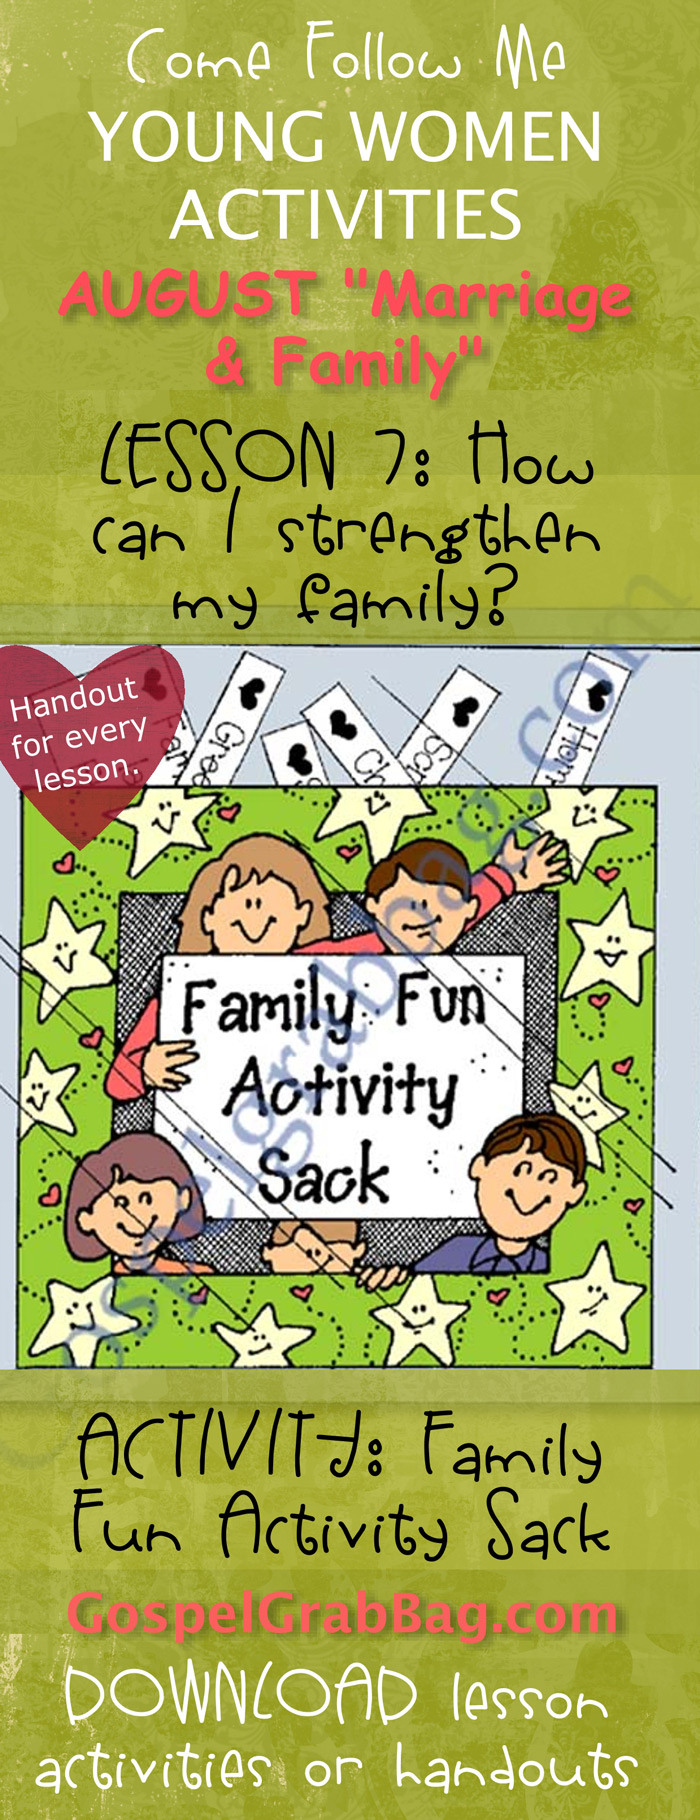 "STRENGTHEN FAMILY: Come Follow Me – LDS Young Women Activities, August Theme: ""Marriage and Family"", Lesson #7 How can I strengthen my family? handout for every lesson, ACTIVITY: Family Fun Activity Sack - handouts to download from gospelgrabbag.com"